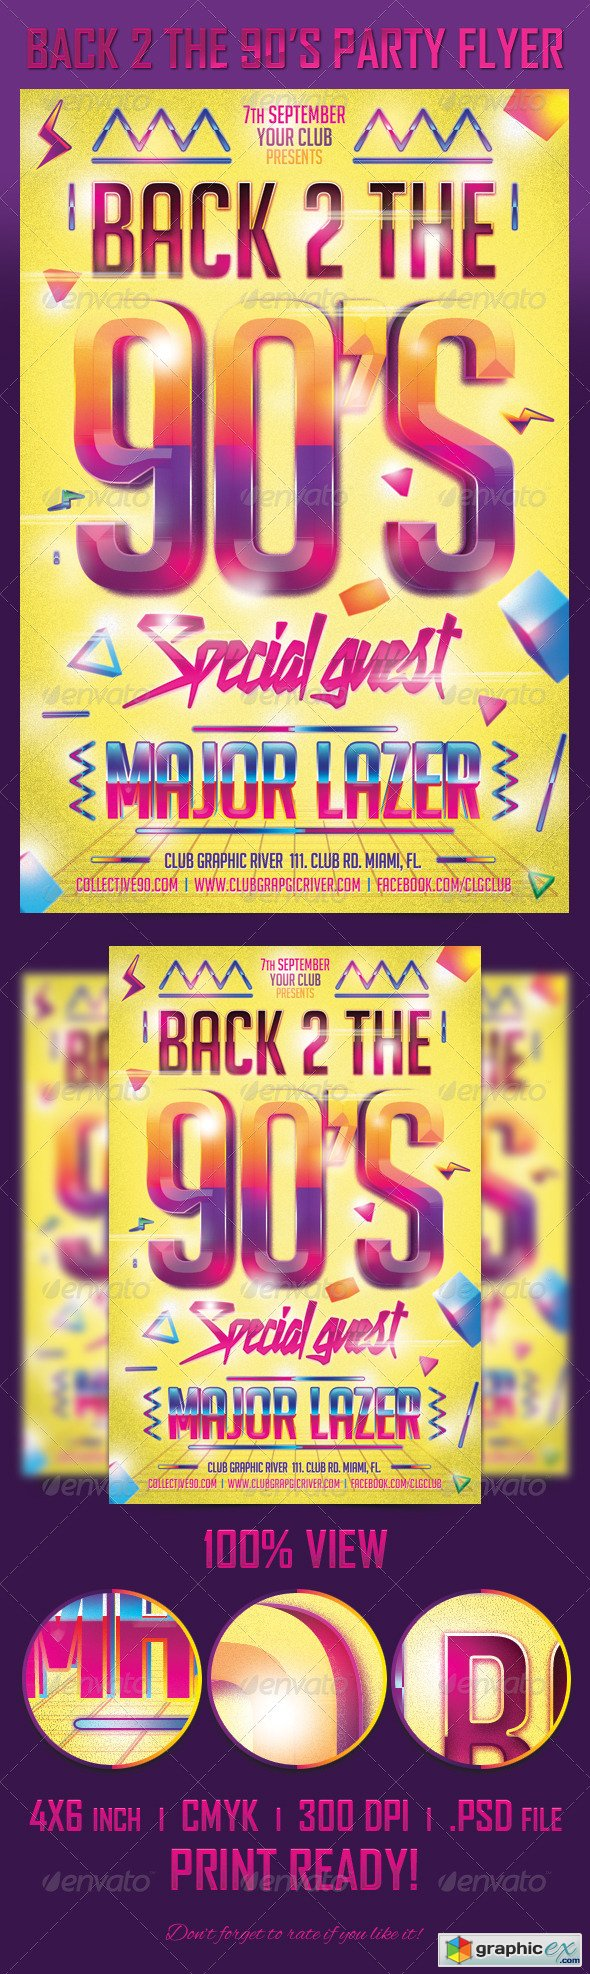 Back 2 the 90's Party Flyer Template 5447520